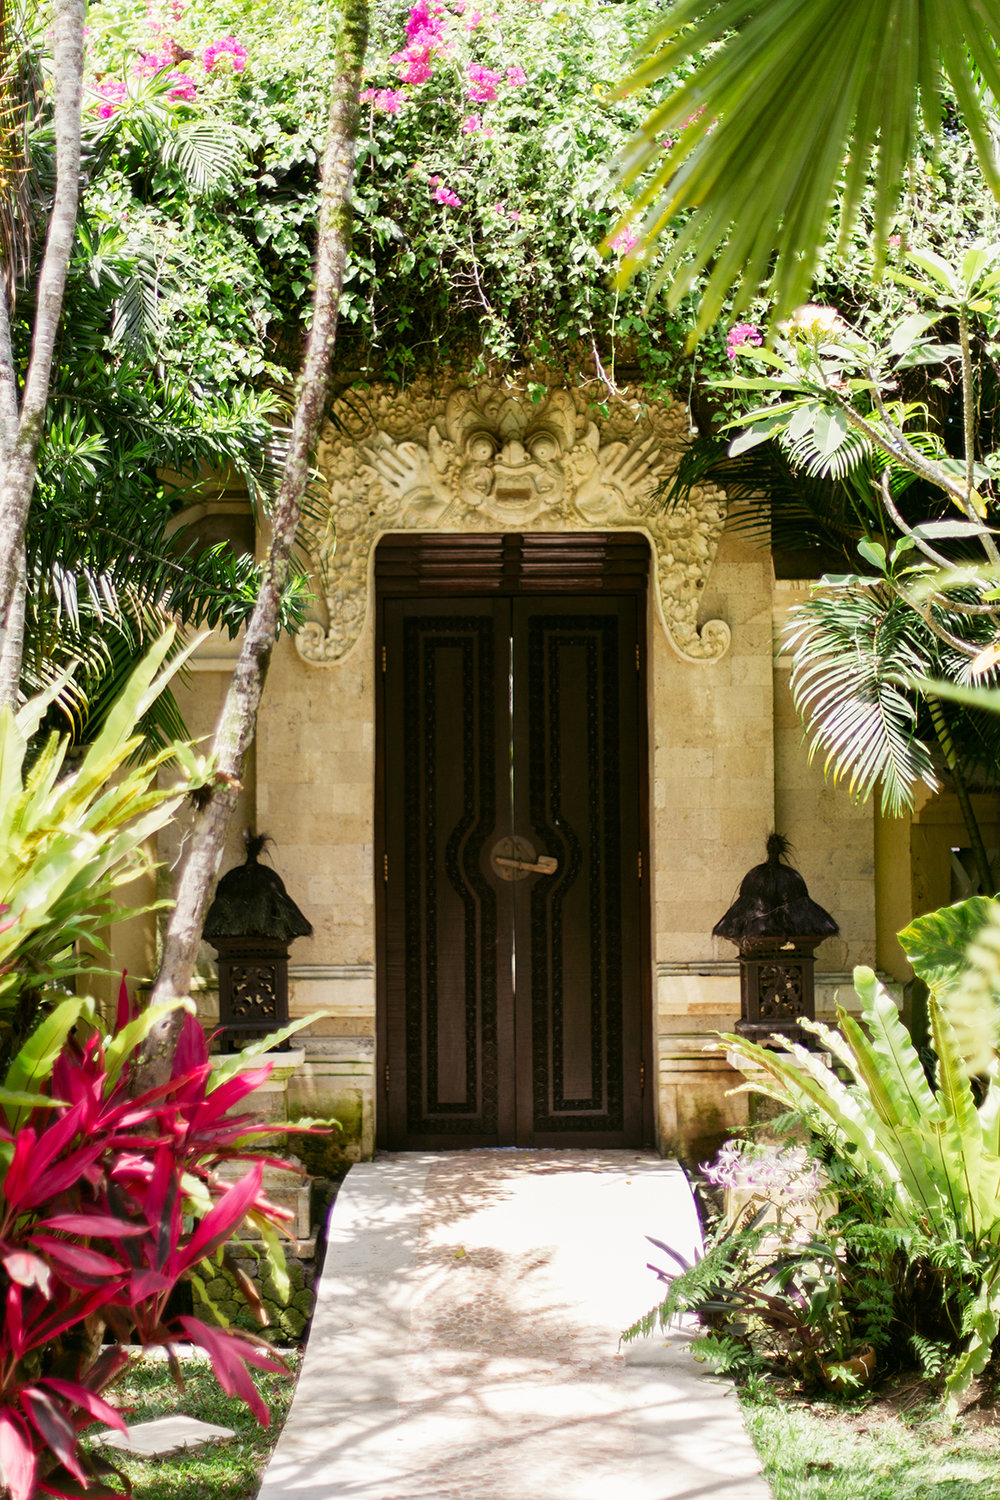 PERSONAL RETREATS - .These retreats are typically held in the magical land of Tulum, Mexico – one of the most beautiful and unique destinations in the world. Known for its lush jungle, pristine beaches and rich legacy of Mayan culture, Tulum is the perfect place to take an immersive dive into the mysticism and science of Tantra and energy work.Personal retreats are special 1-1 experiences, providing the opportunity for in-depth exploration, major transformation and learning. On request, they can also be arranged for pairs or small groups with whom you can share your journey, and can be enjoyed wherever you are in the world.The retreats are comprised of 4 modules, each 3 days long. We encourage you to experience the retreat modules in succession, over the period of a few weeks or months, as the benefits of progressive work are powerful. Each retreat module is designed to build upon the themes and results of previous ones, creating deep shifts in awareness